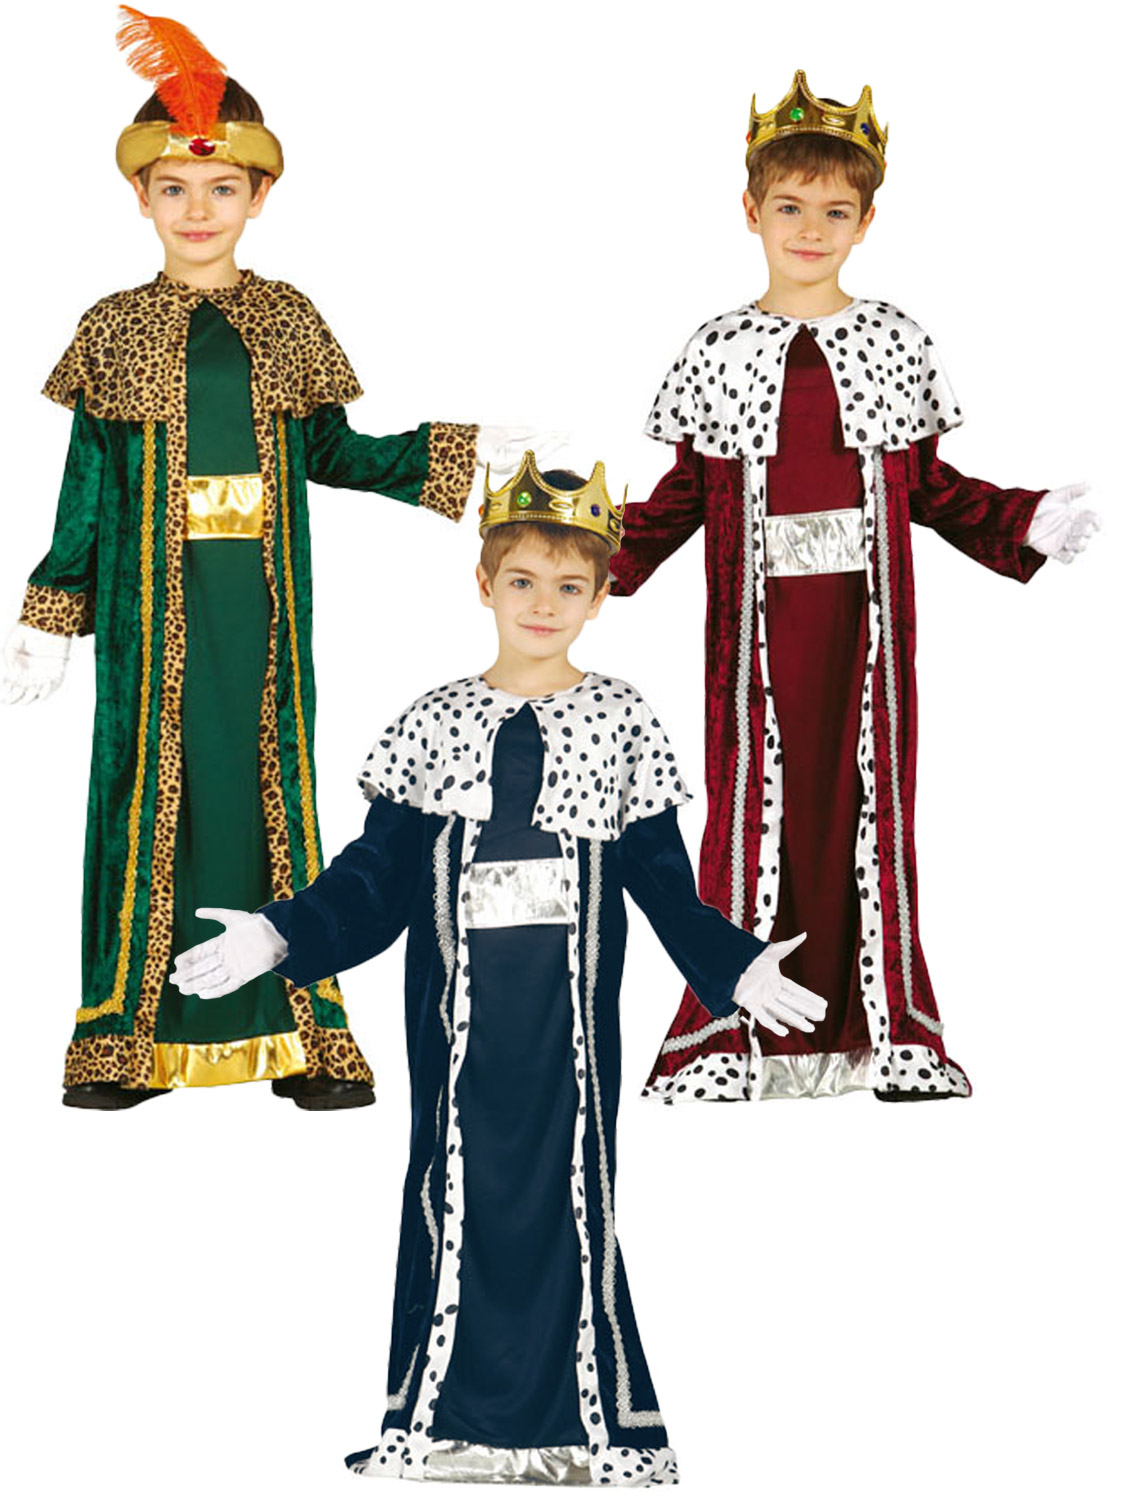 Boys wise men costume childs christmas king nativity fancy dress kid transform your child into a wiseman or a king this christmas with this boys xmas nativity costume solutioingenieria Choice Image